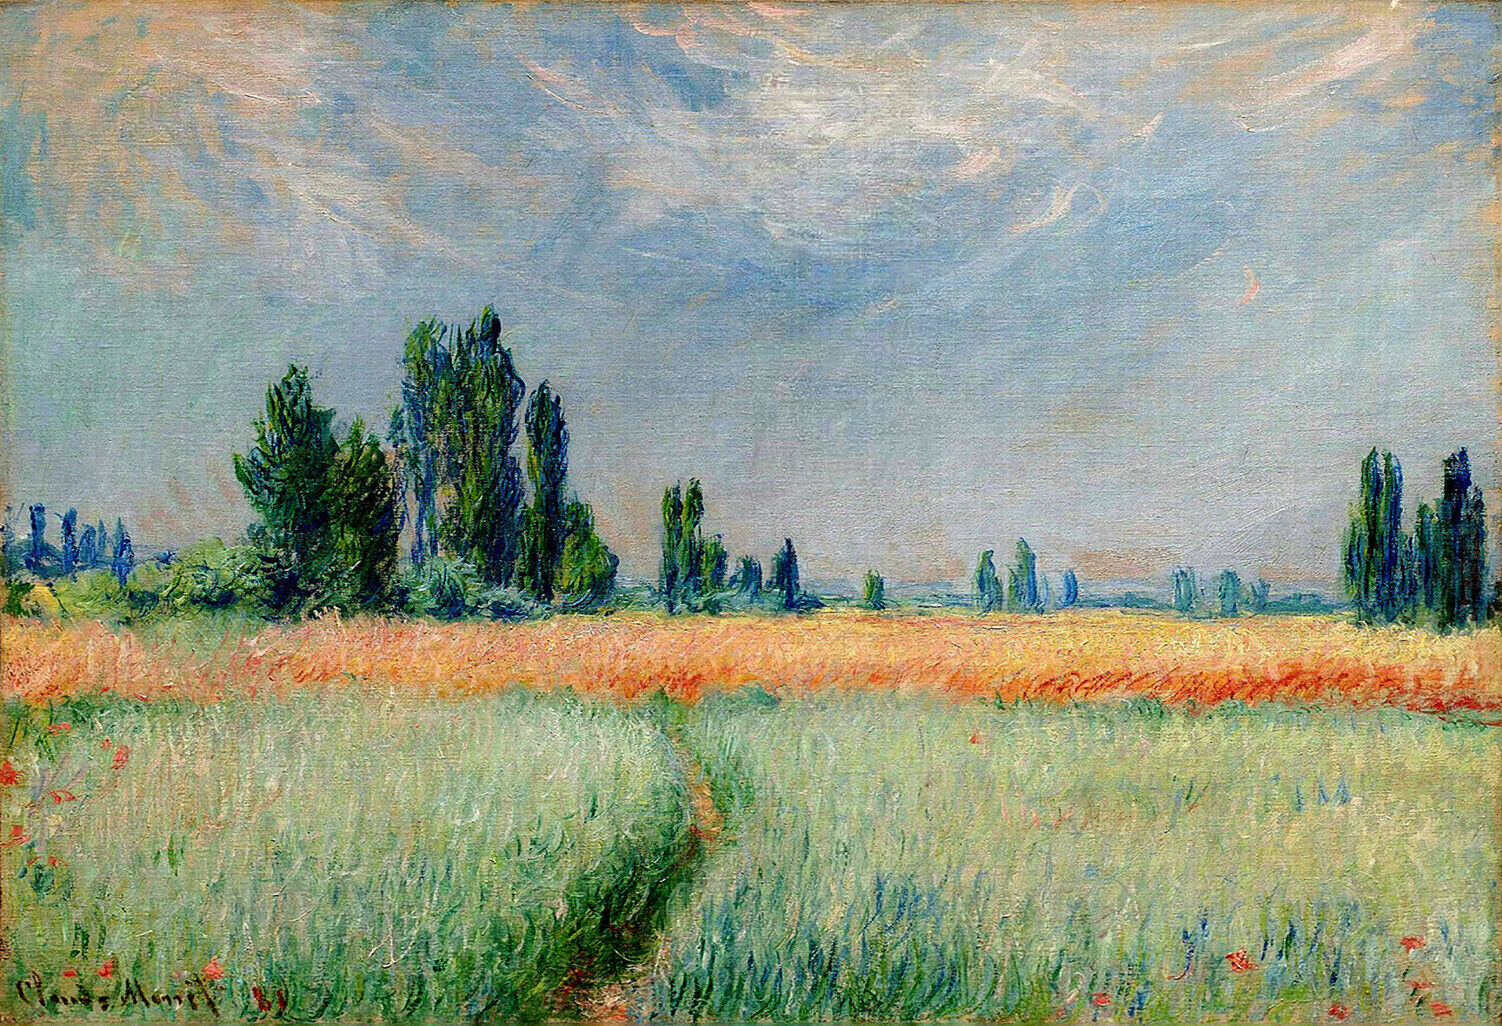 Vintage painting art claude monet artwork wheat field poster canvas framed